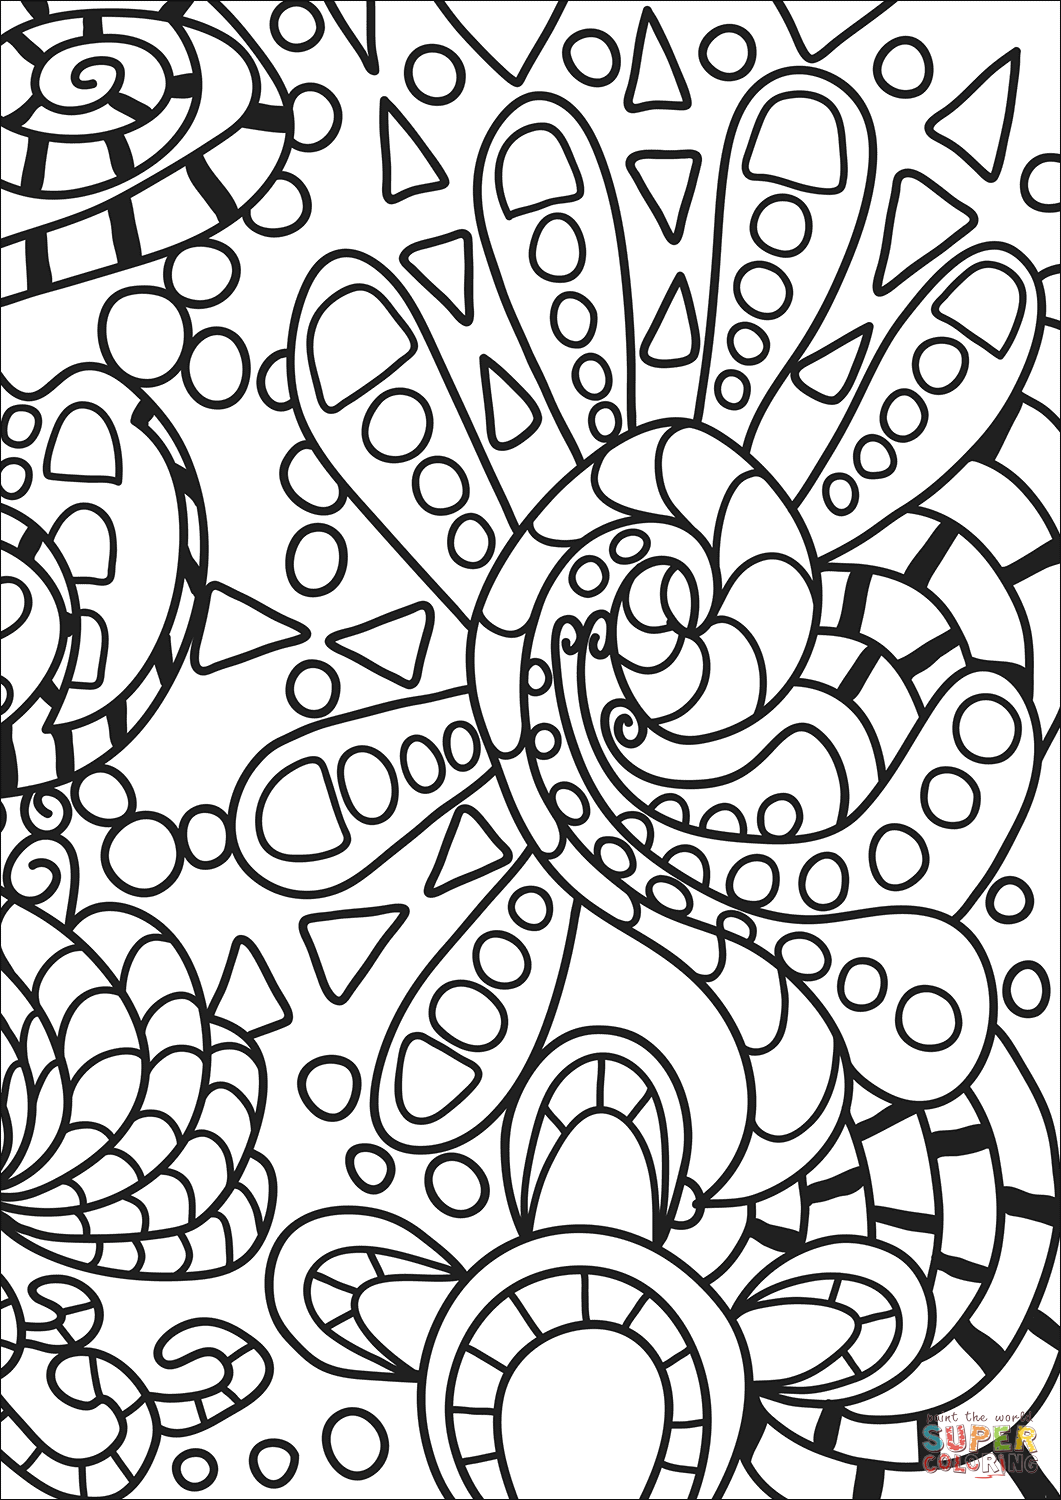 free doodle art to print and color doodle mash up coloring page free printable coloring pages art free doodle color print and to